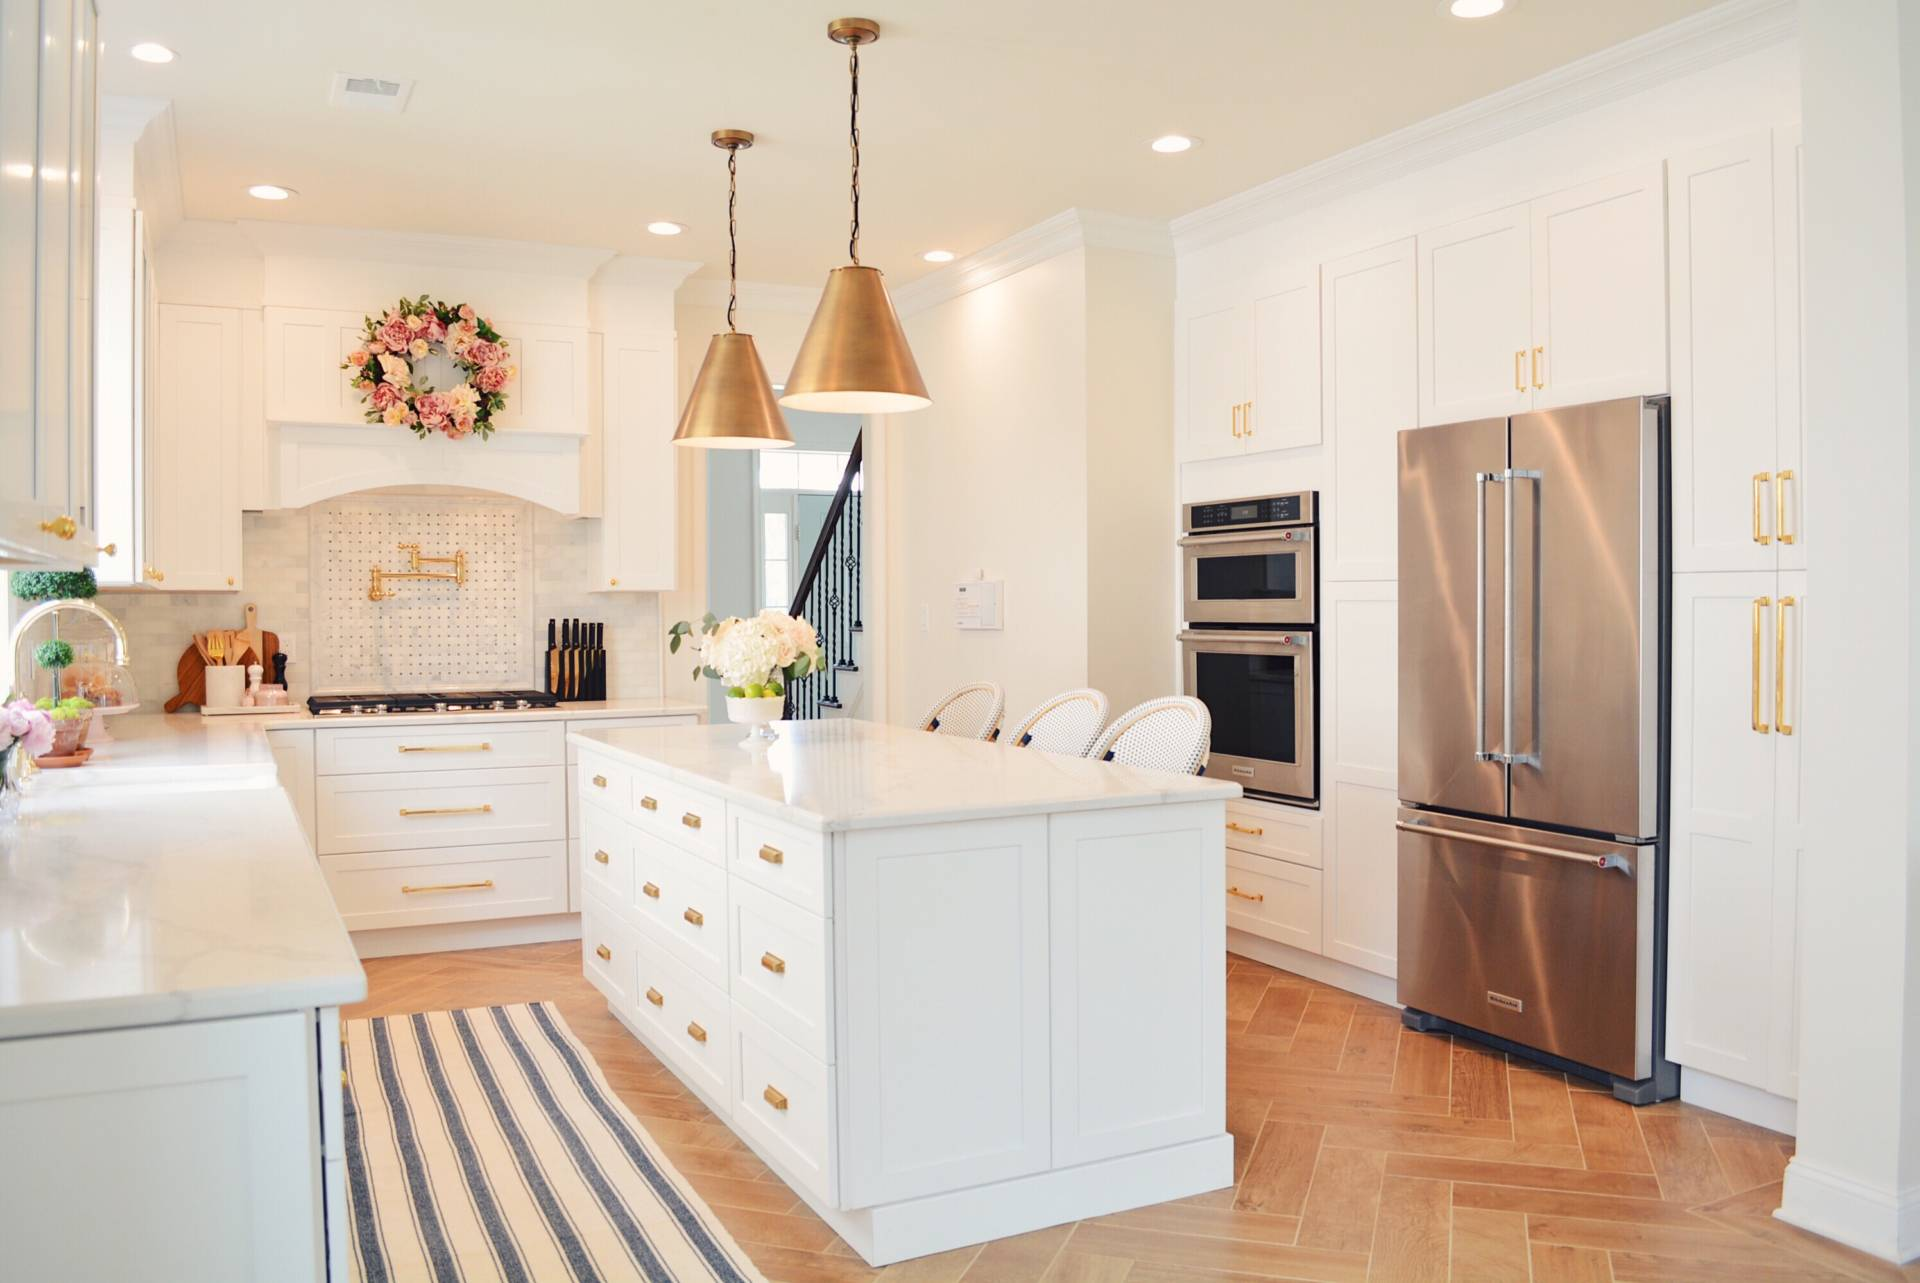 Classic Kitchen Lighting How To Update Kitchen Lighting On A Budget The Leslie Style